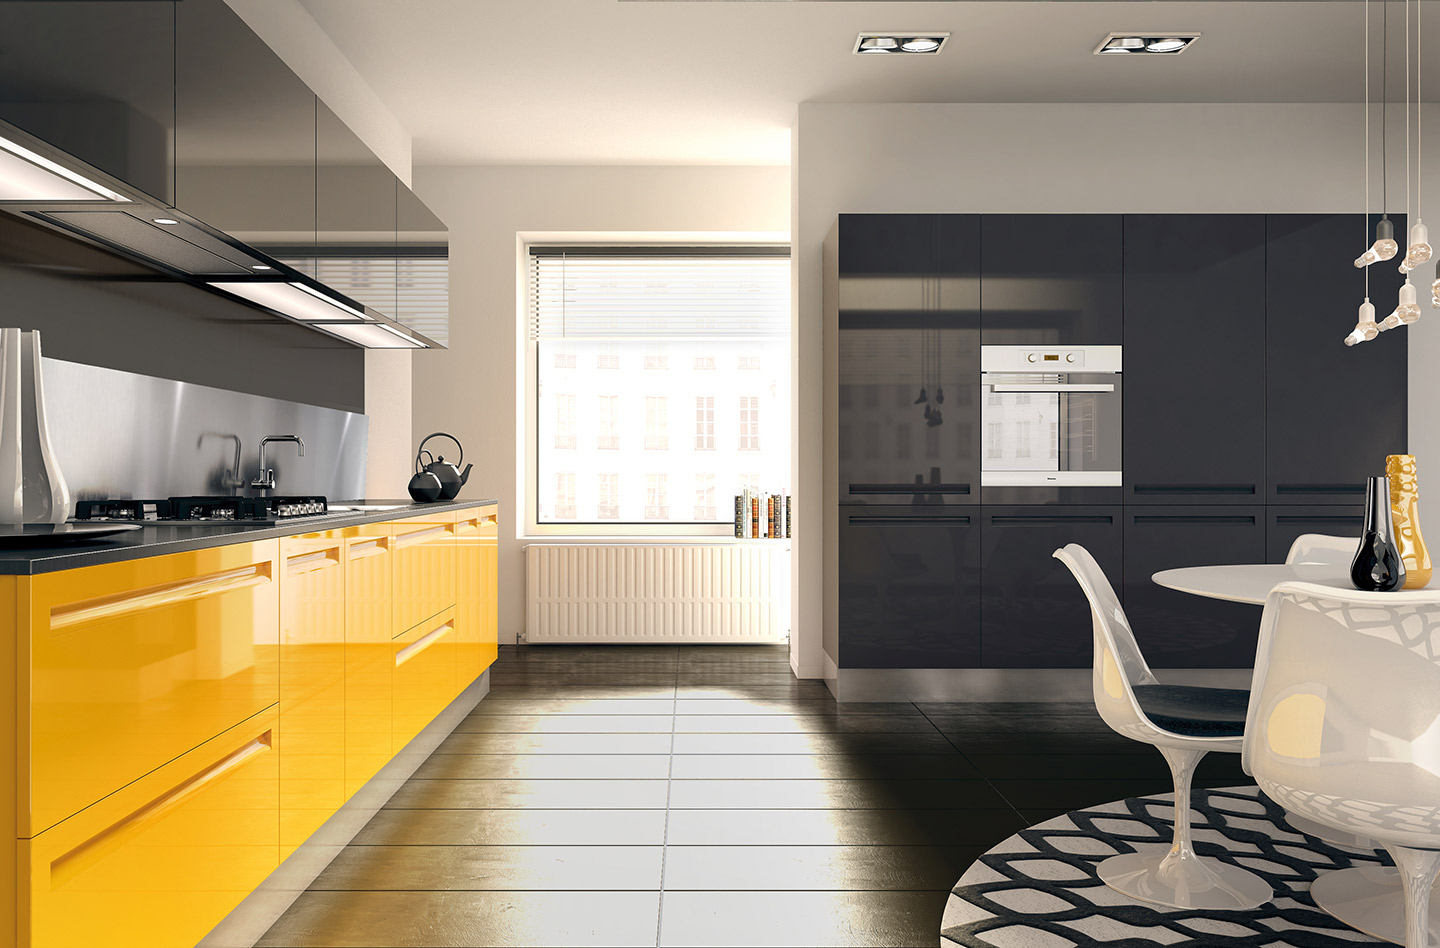 Cucina Campiglio - LAB Kitchens Collection - SCIC Italia